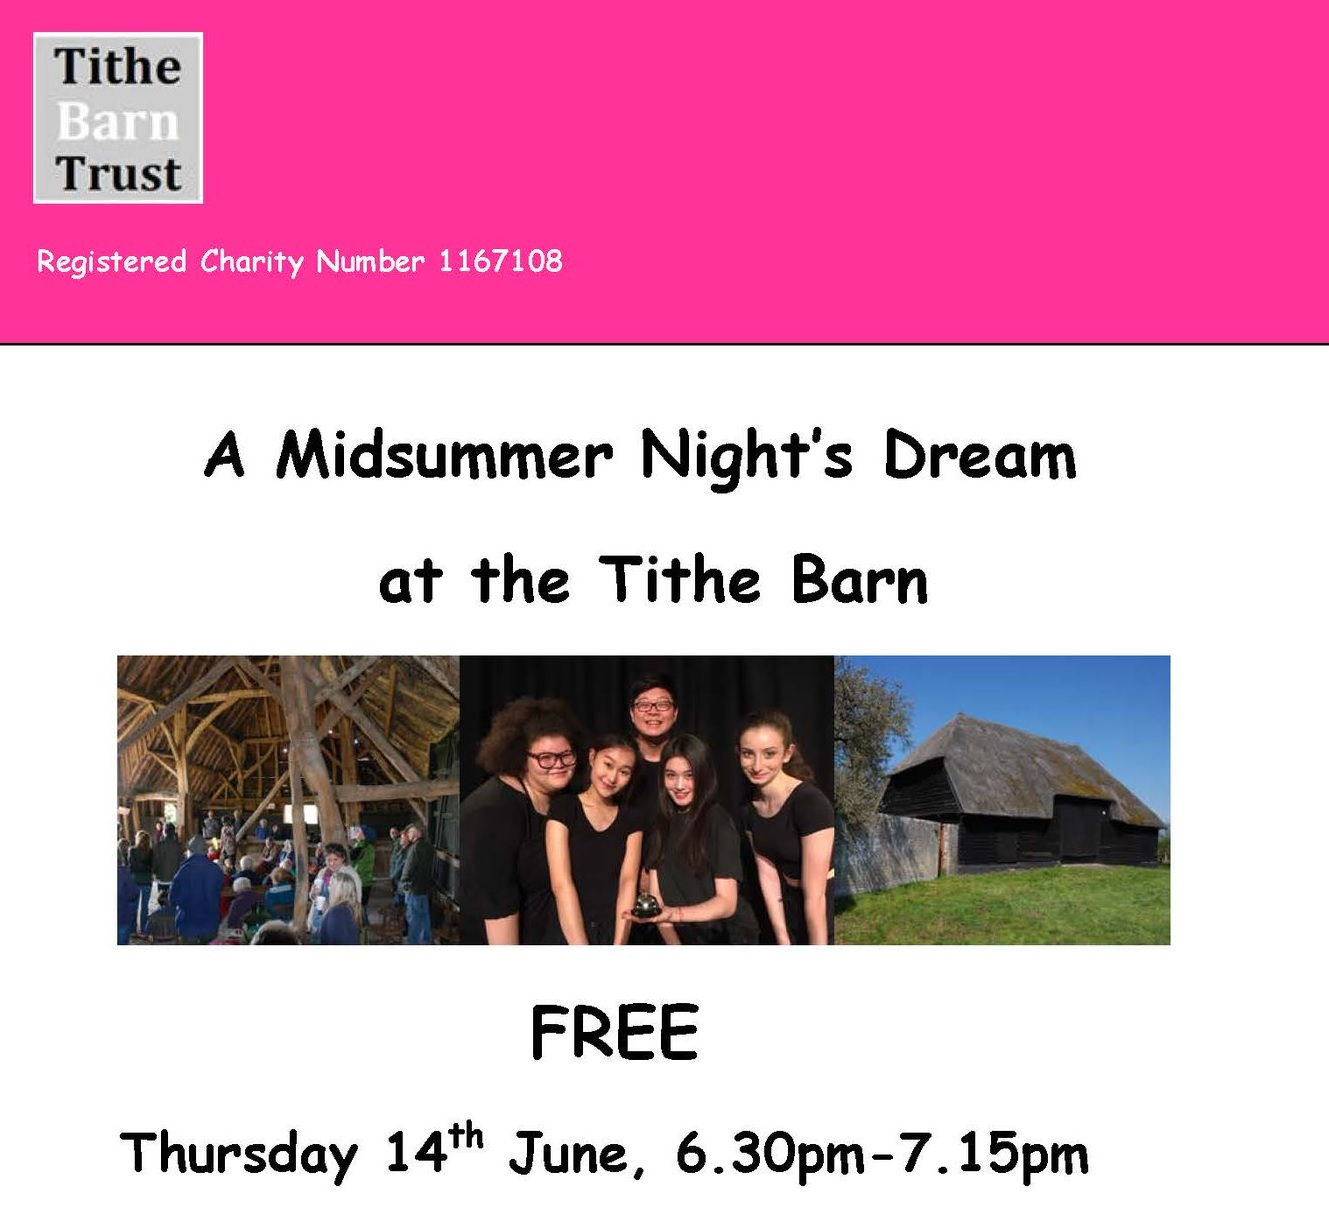 Landbeach Tithe Barn Shakespeare